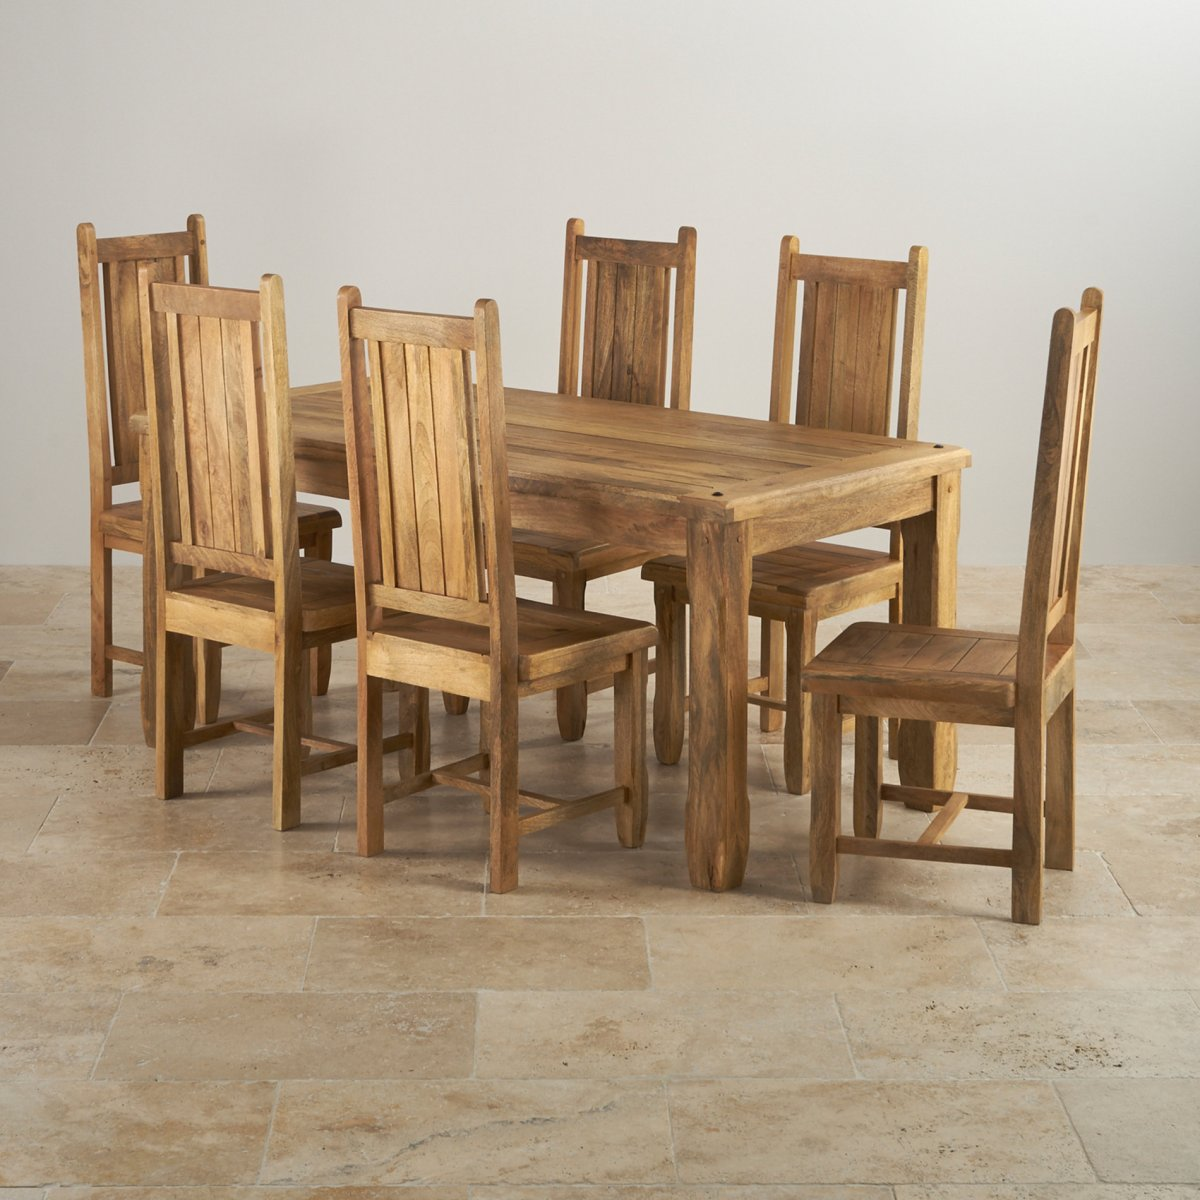 Baku light dining table in natural mango 6 mango chairs for Dinner table set for 4